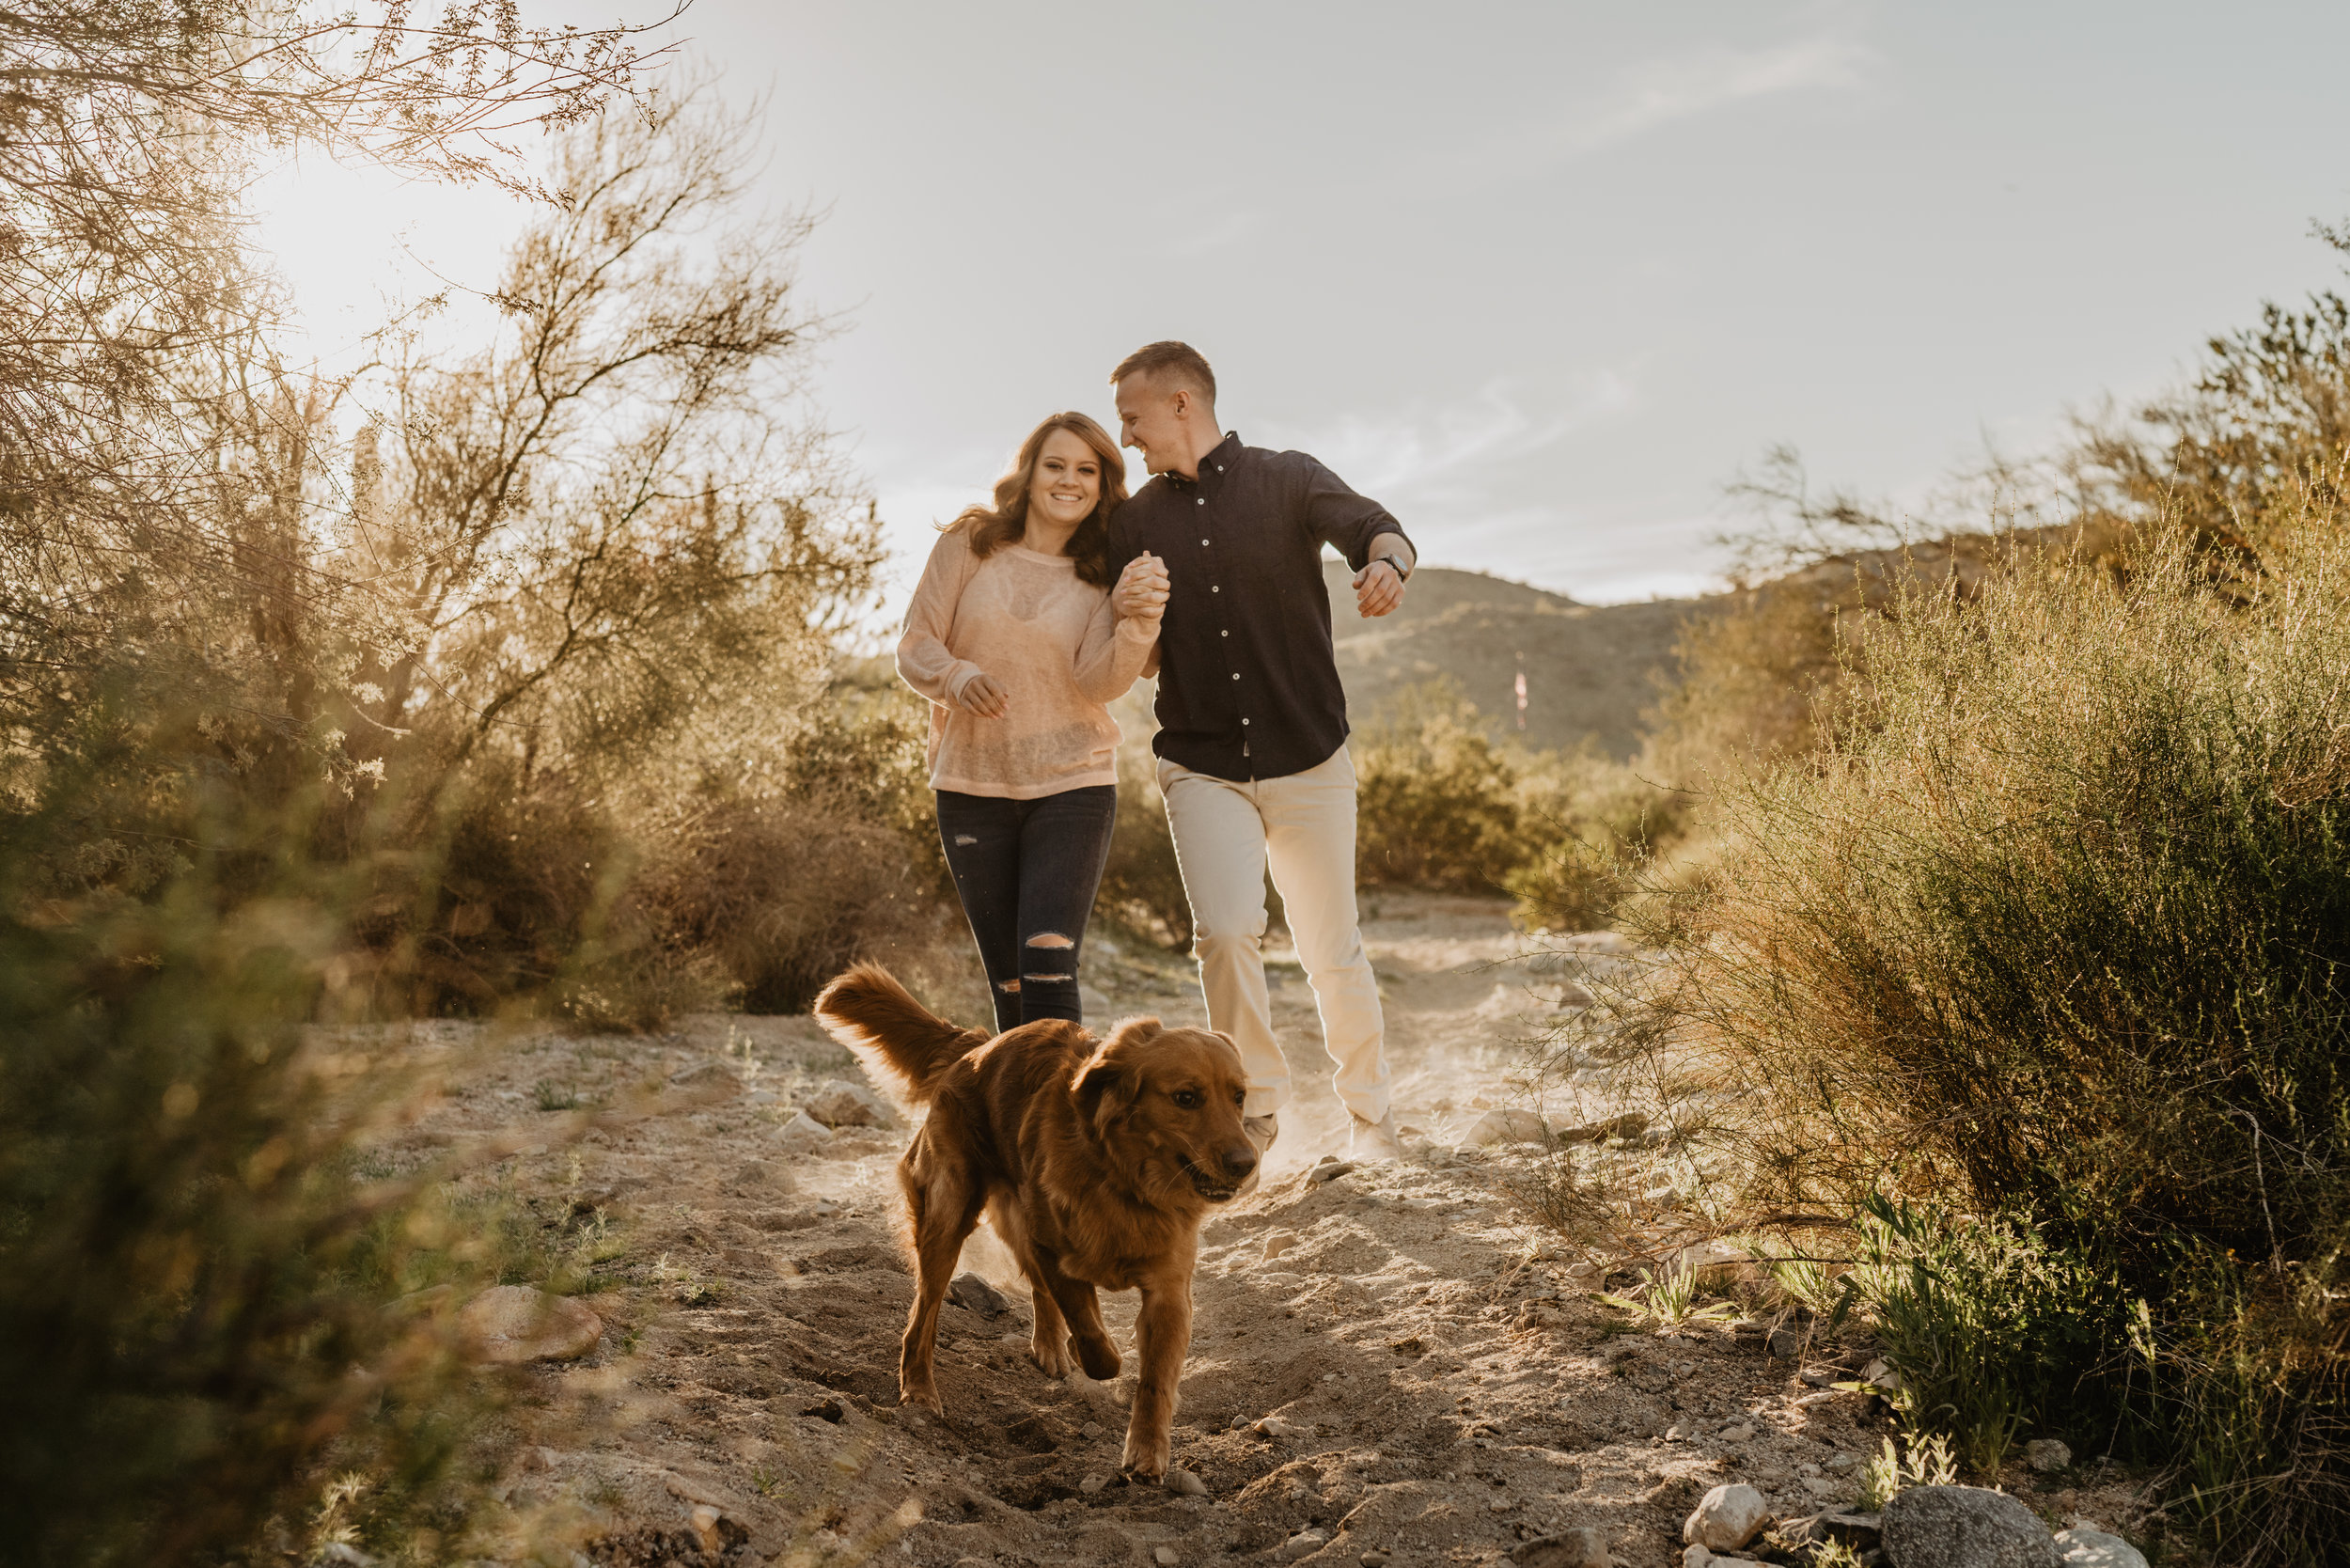 phoenix wedding photographer - arizona elopement photographer - adventure engagement session - engagement session with dog - destination wedding photographer - adventure elopement photographer - southern California elopement photographer - PNW elopement photographer - colorado elopement photographer